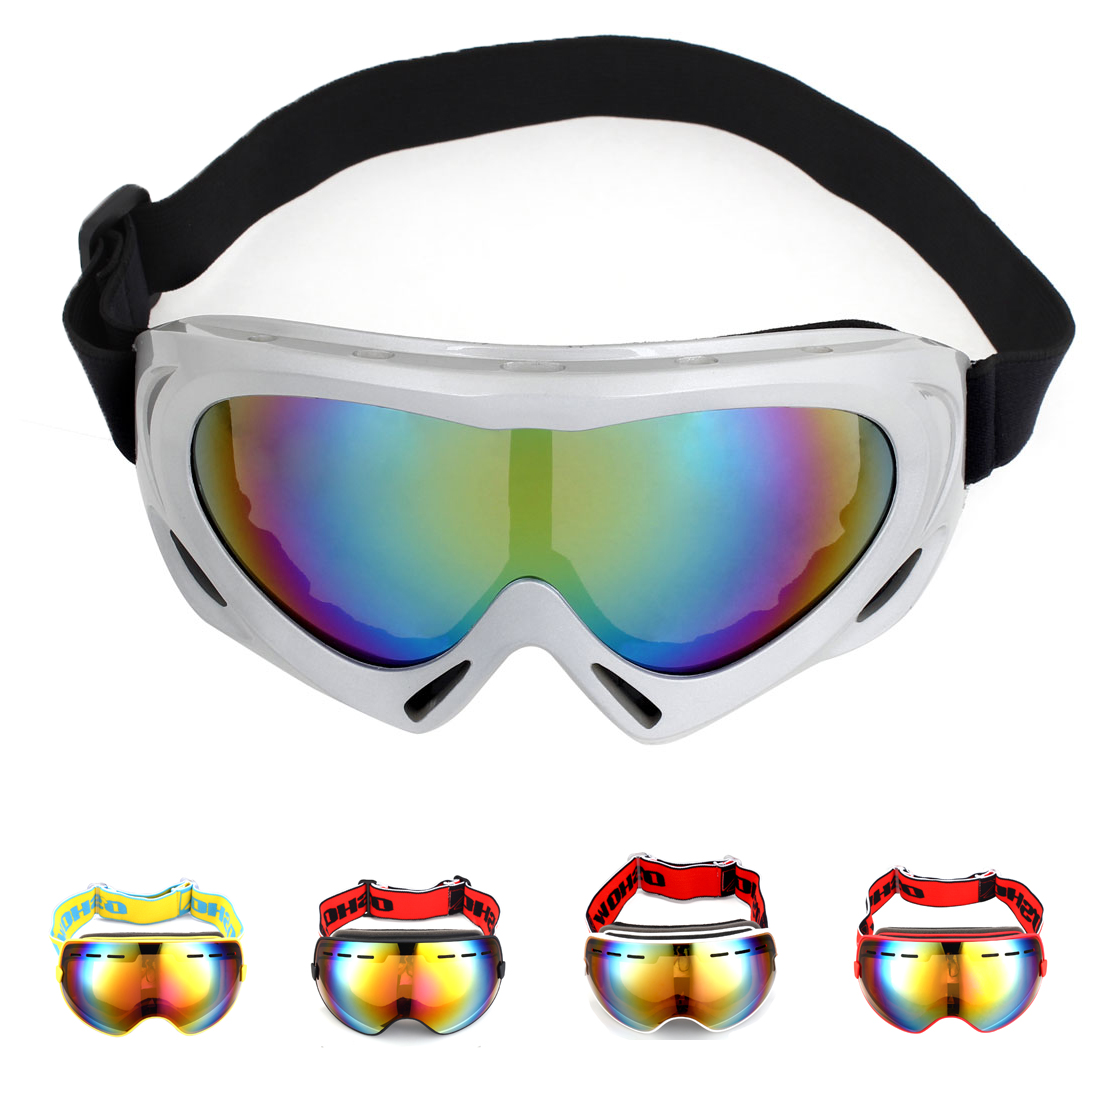 Unique Bargains Winter Sports Snowboard Ski Goggles Windproof Anti-UV Snow Glasses for Men Women